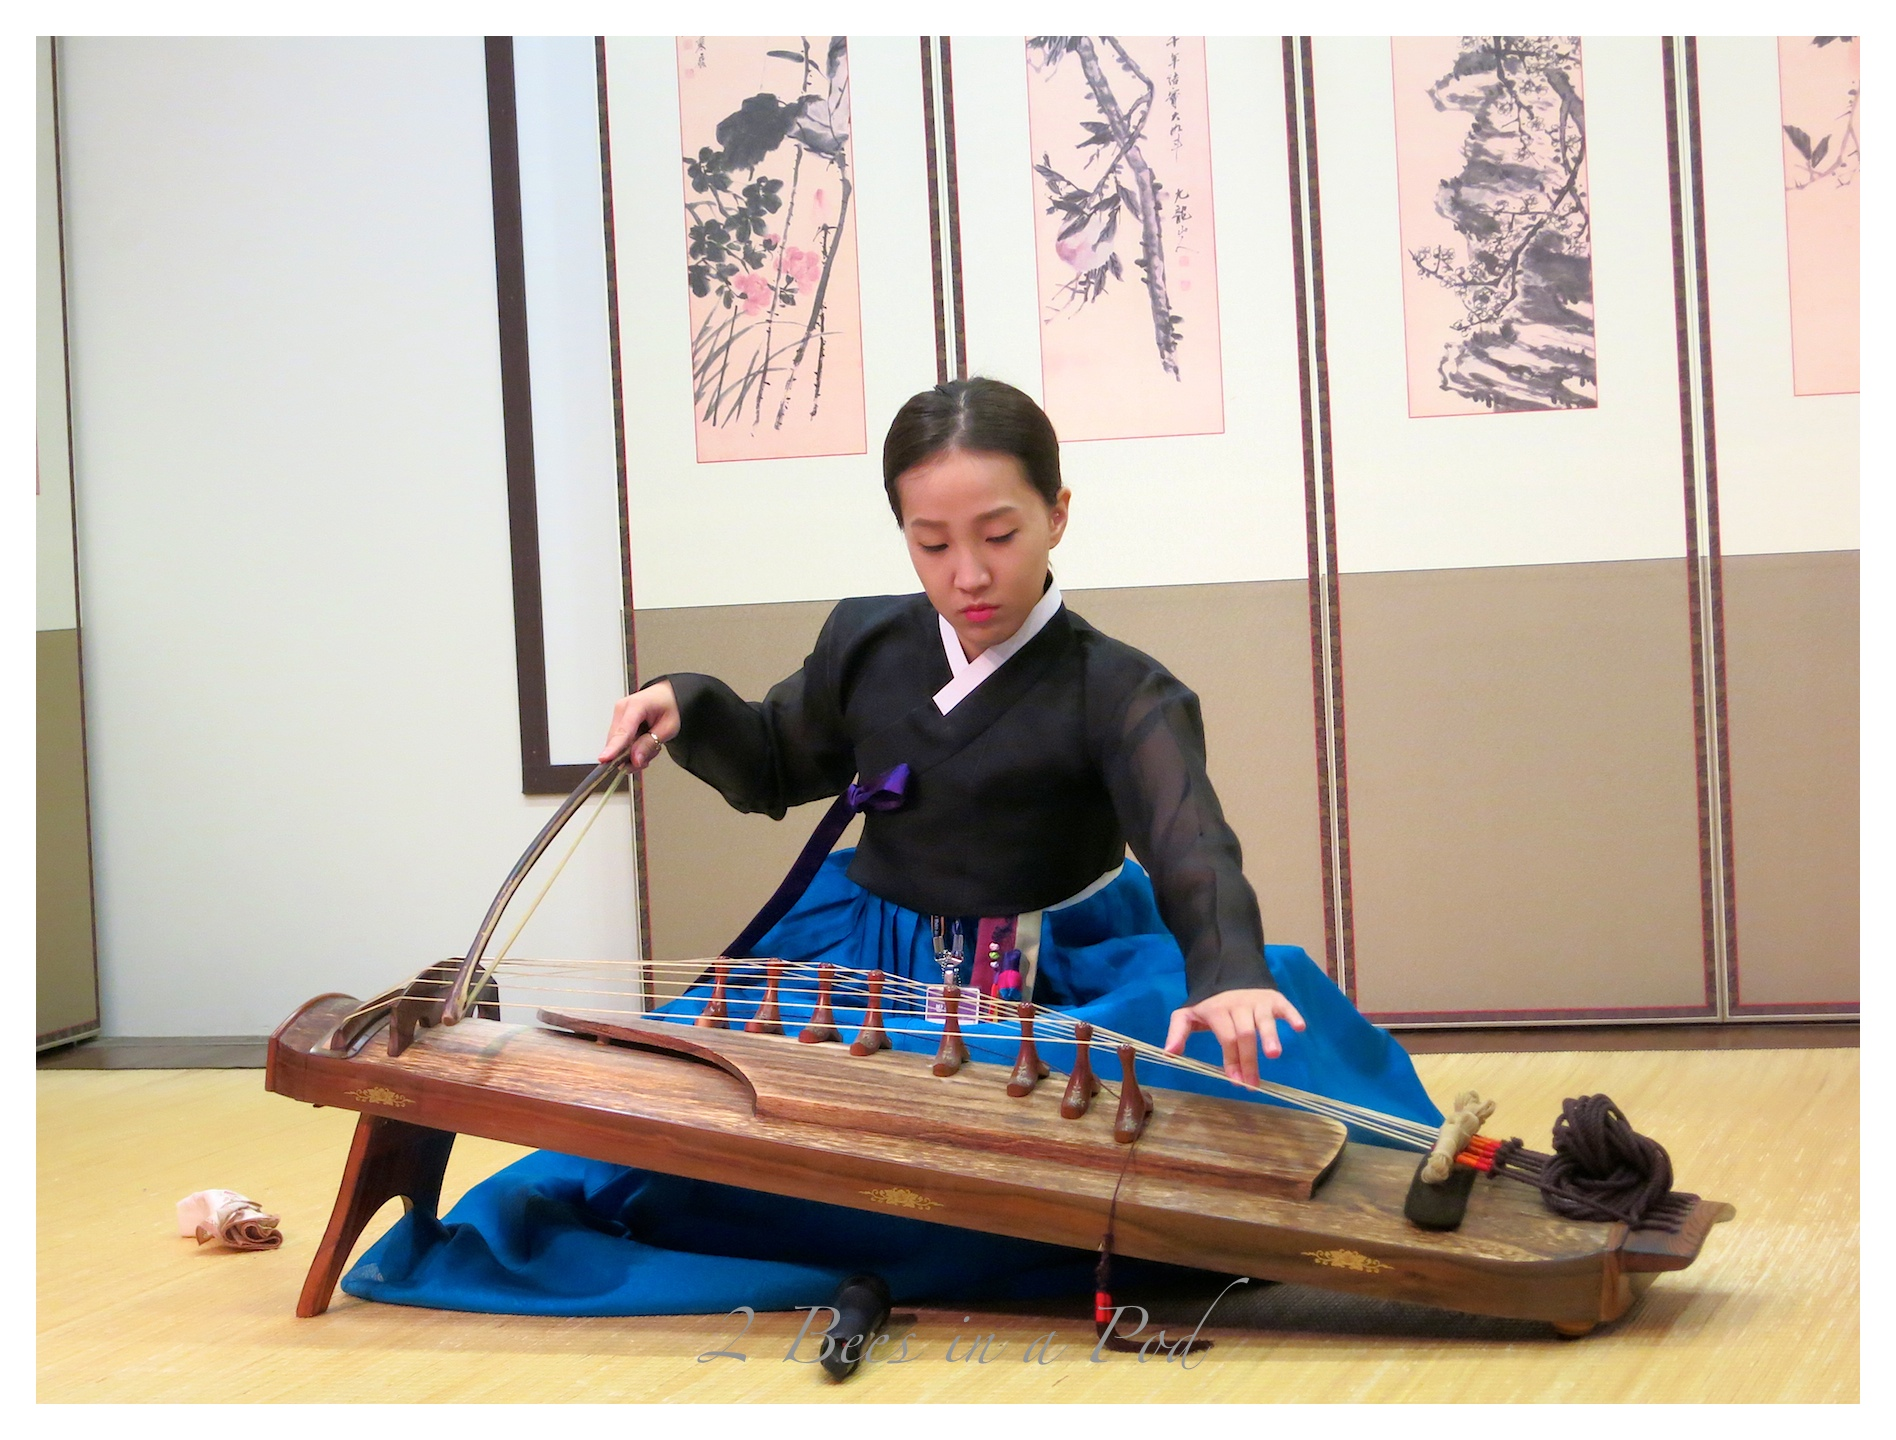 Absolutely gorgeous women performing traditional music in traditional dress.